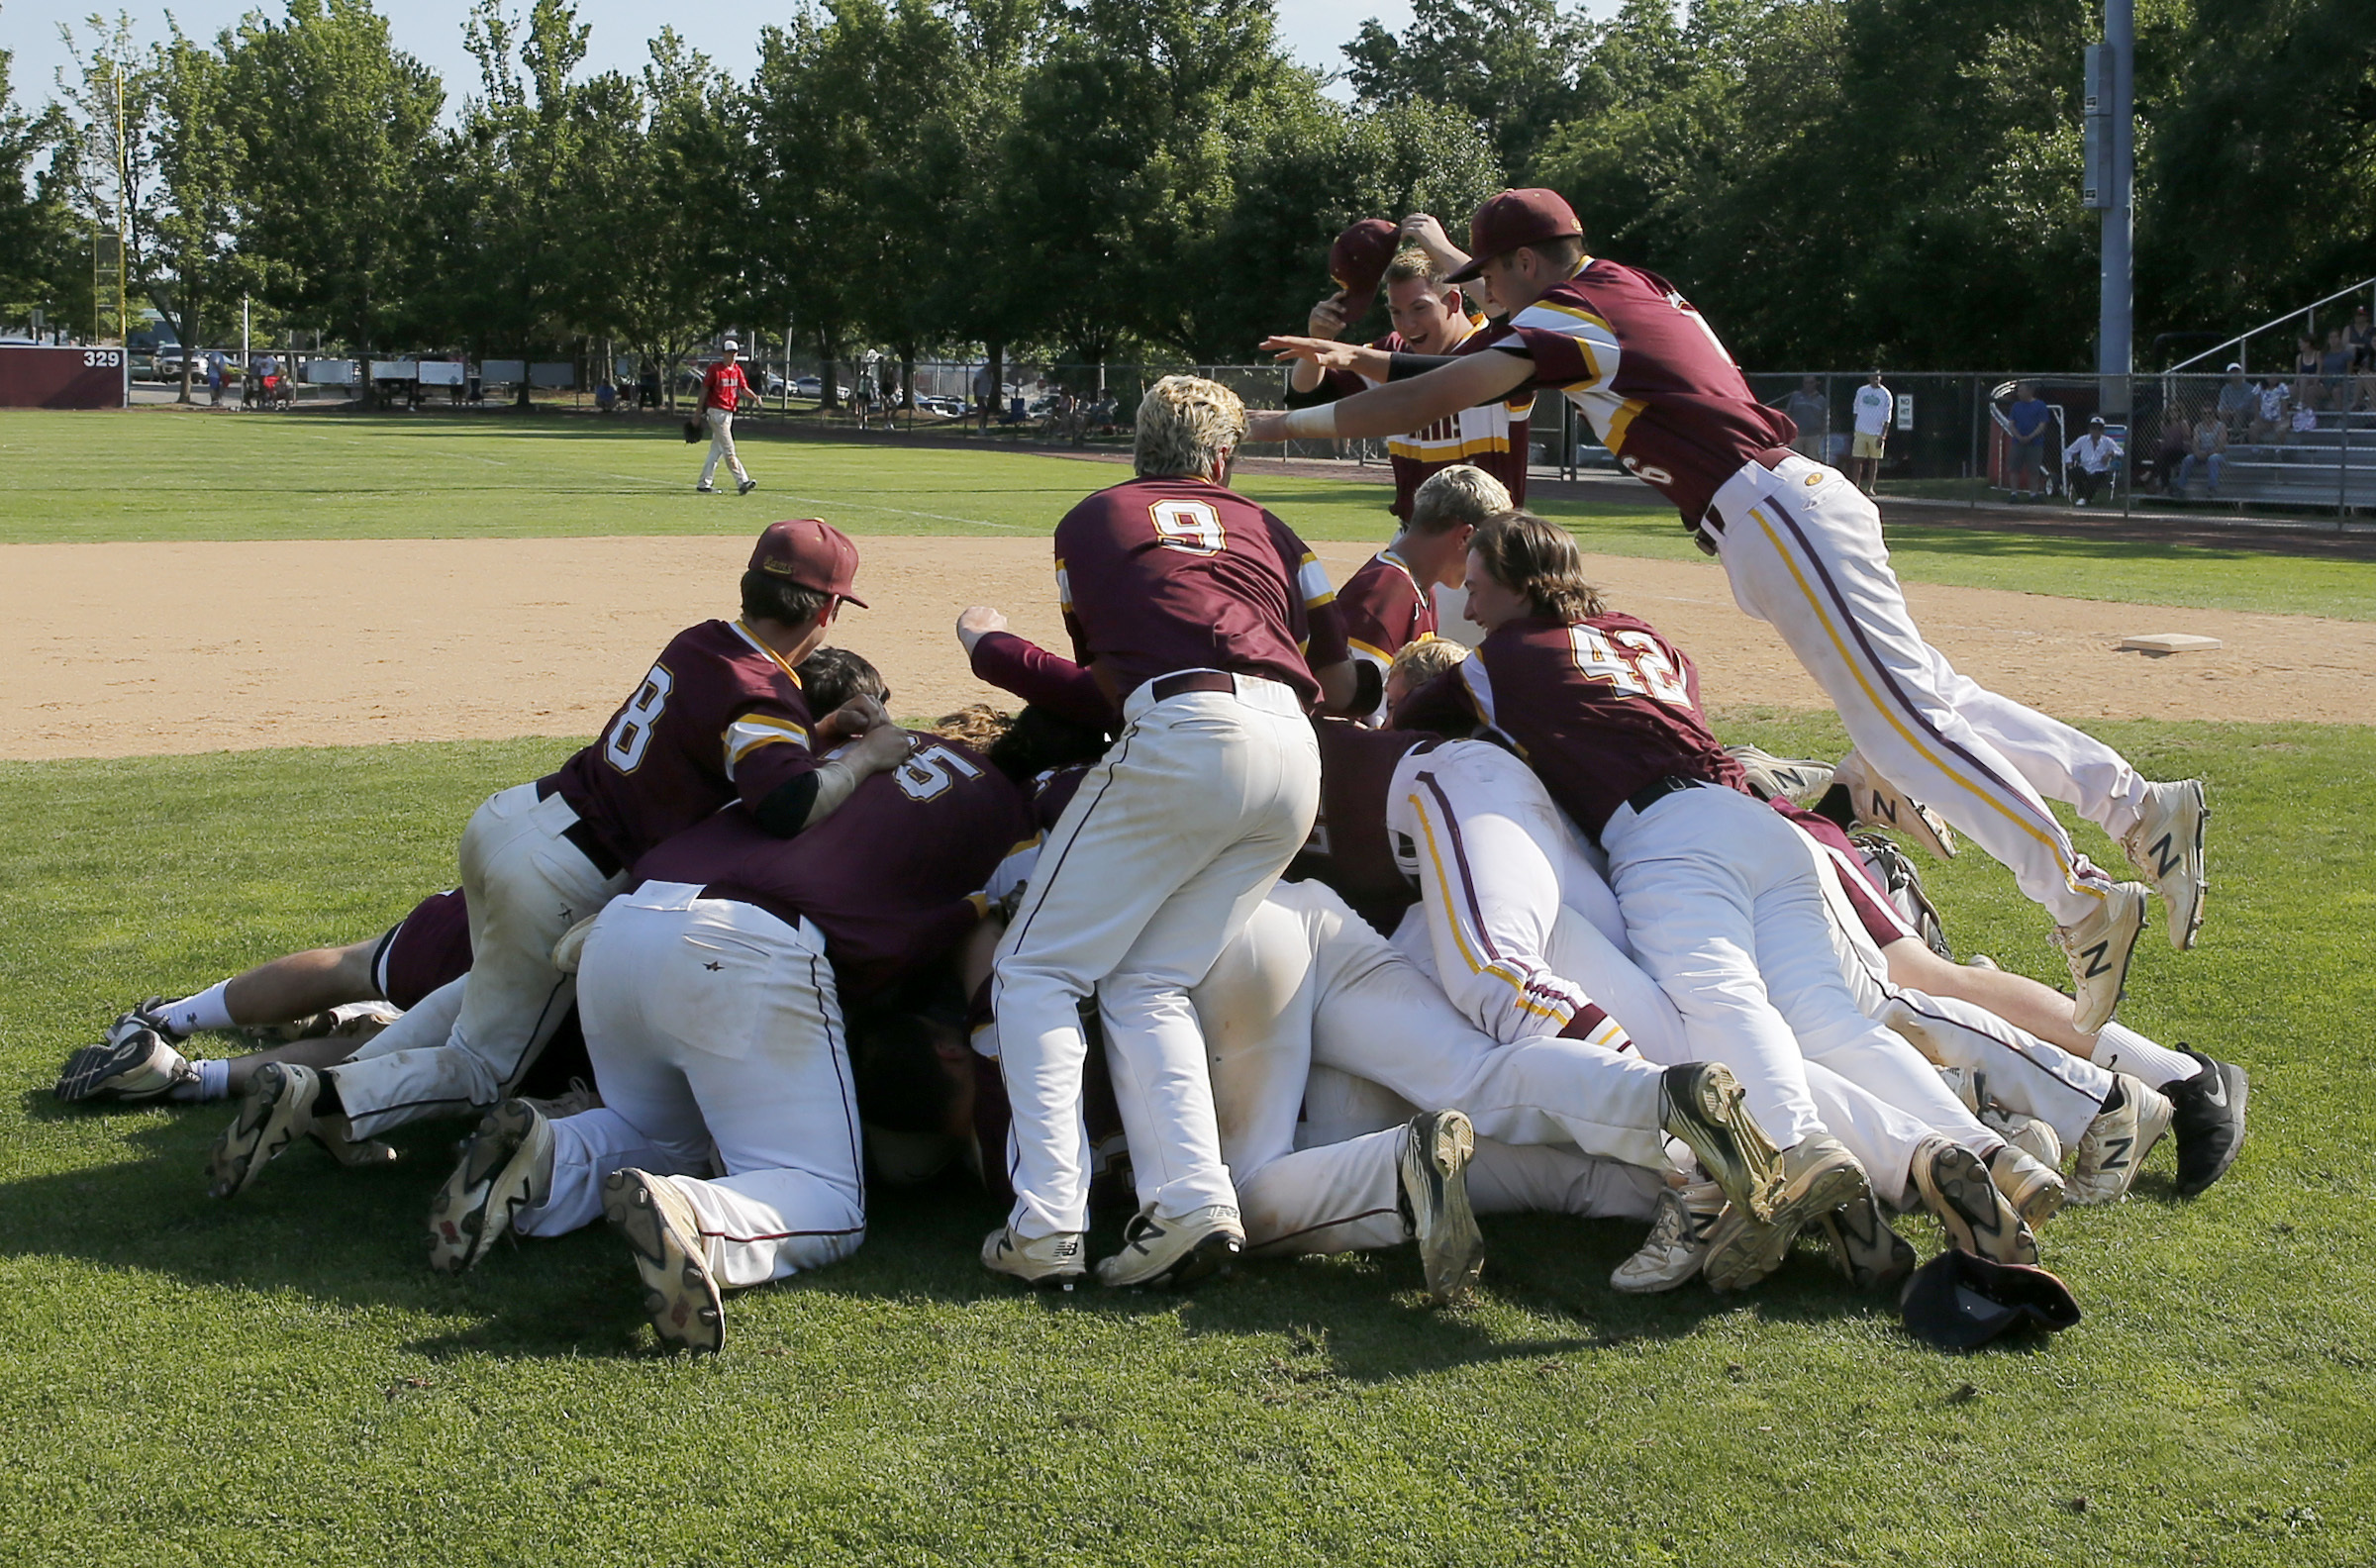 Gloucester Catholic High baseball players celebrate after beating Newark Academy 15-5 for the New Jersey High School Non-Public B state title baseball title at Toms River South High School on Saturday, June 10, 2017.